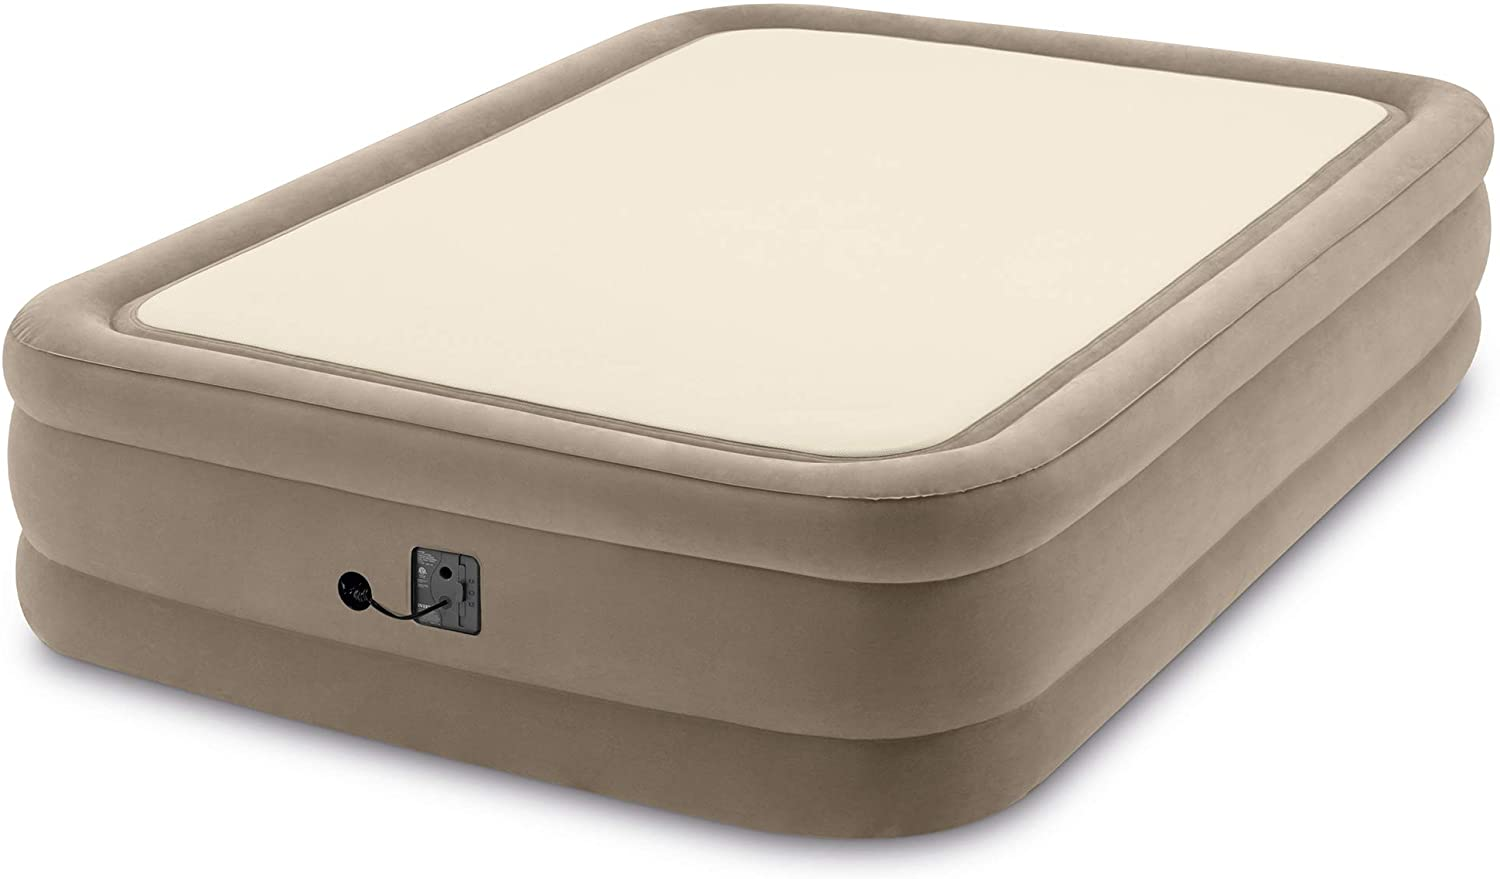 Intex 64477ED Queen specialty shop Size Thermalux Techno Gifts Fiber-Tech Airbed with